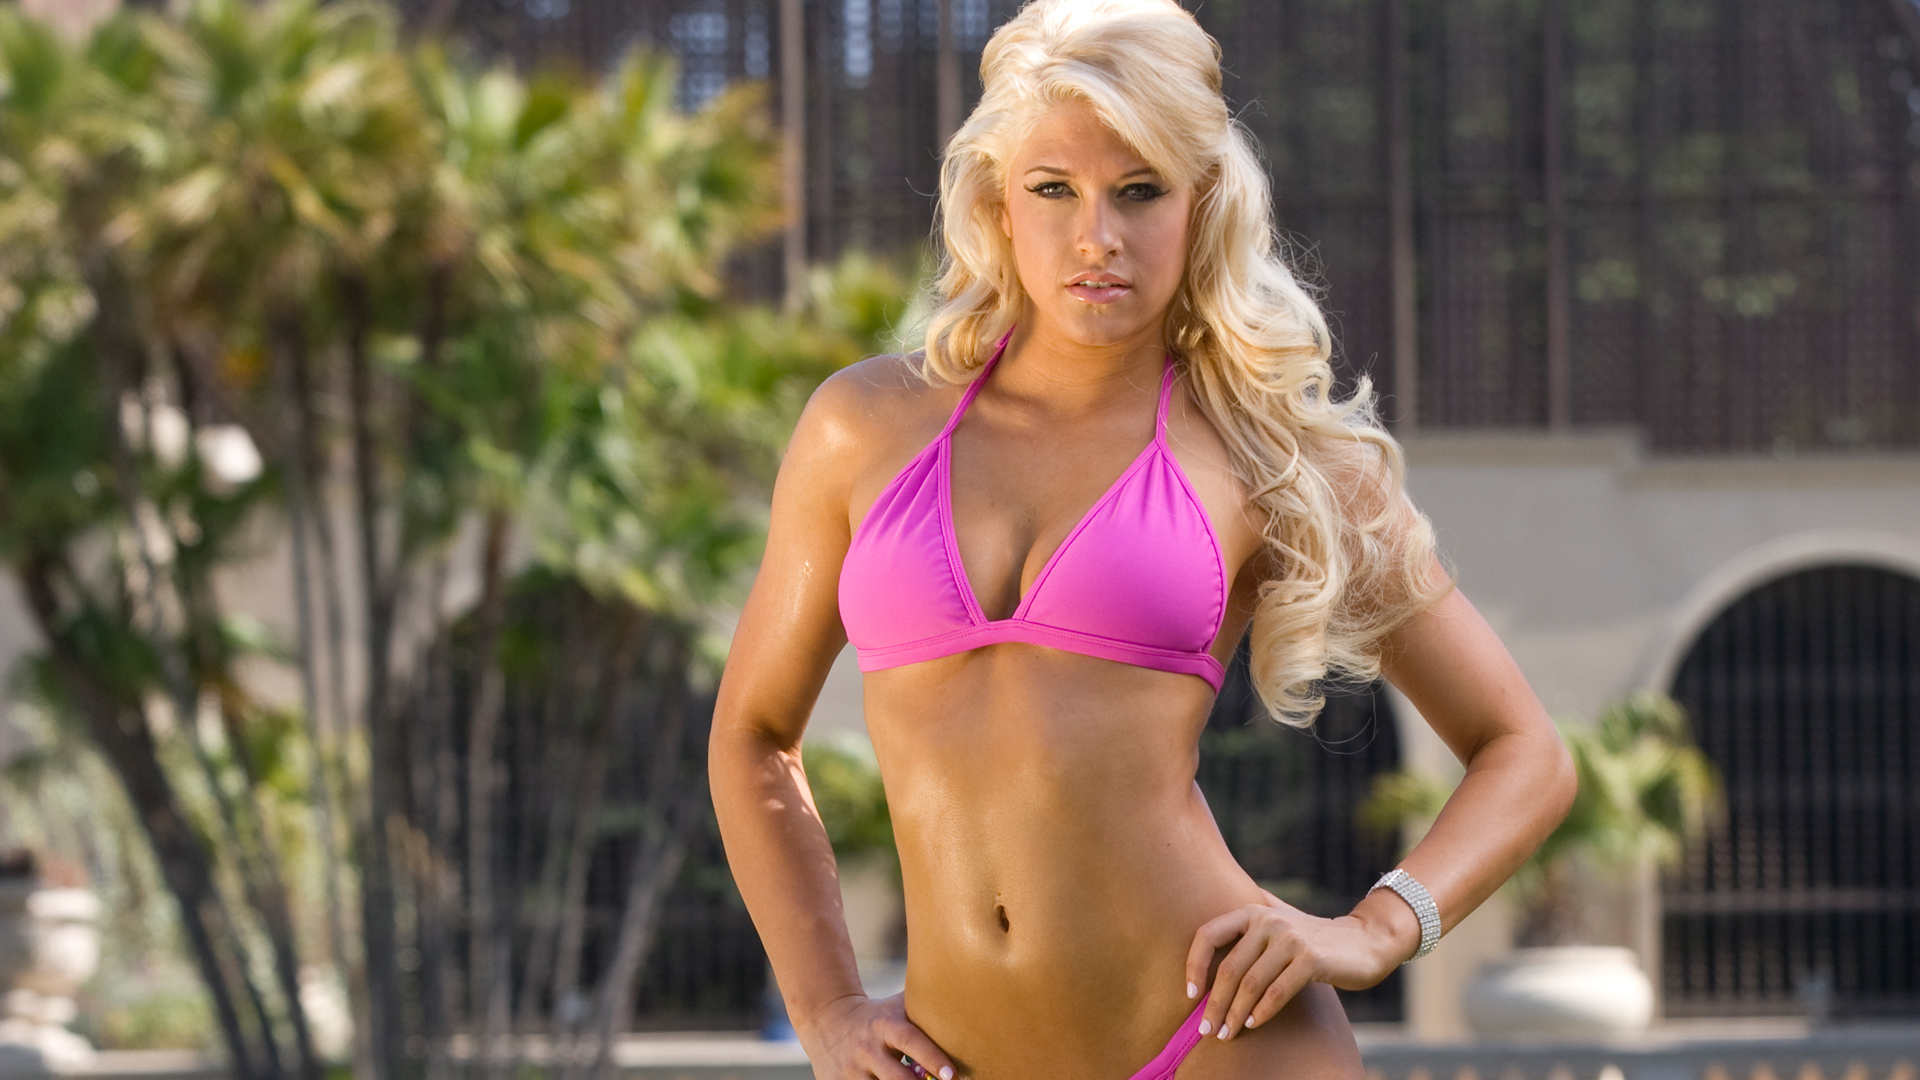 WWE Diva Kelly Kelly Hot